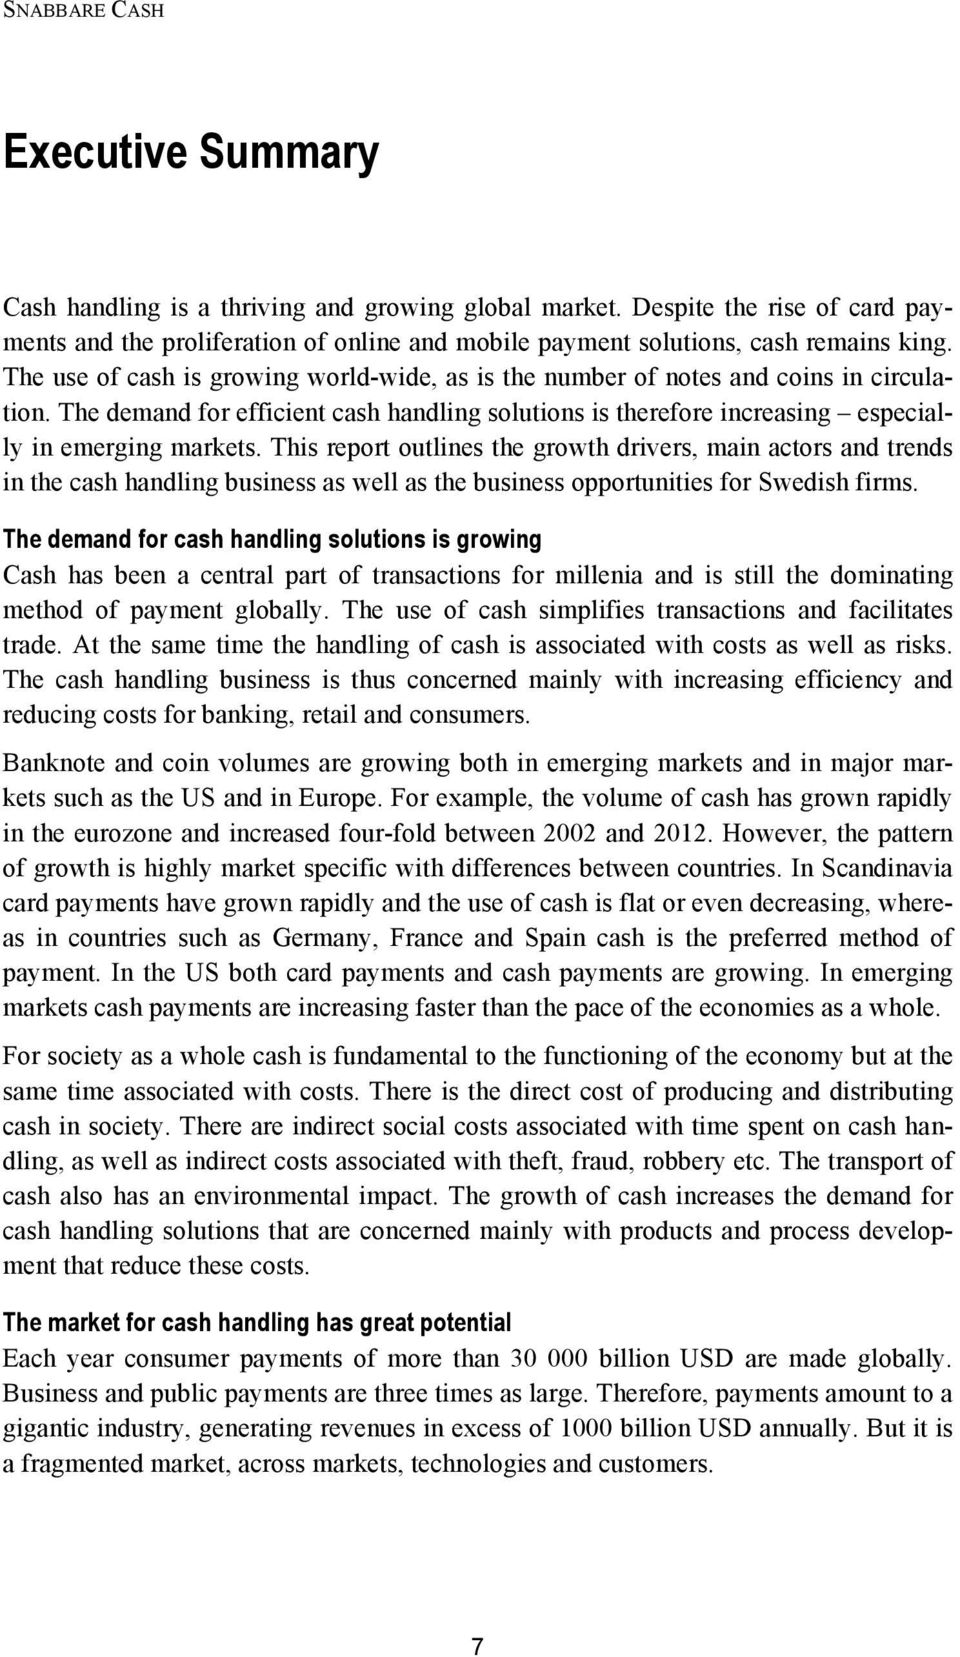 This report outlines the growth drivers, main actors and trends in the cash handling business as well as the business opportunities for Swedish firms.